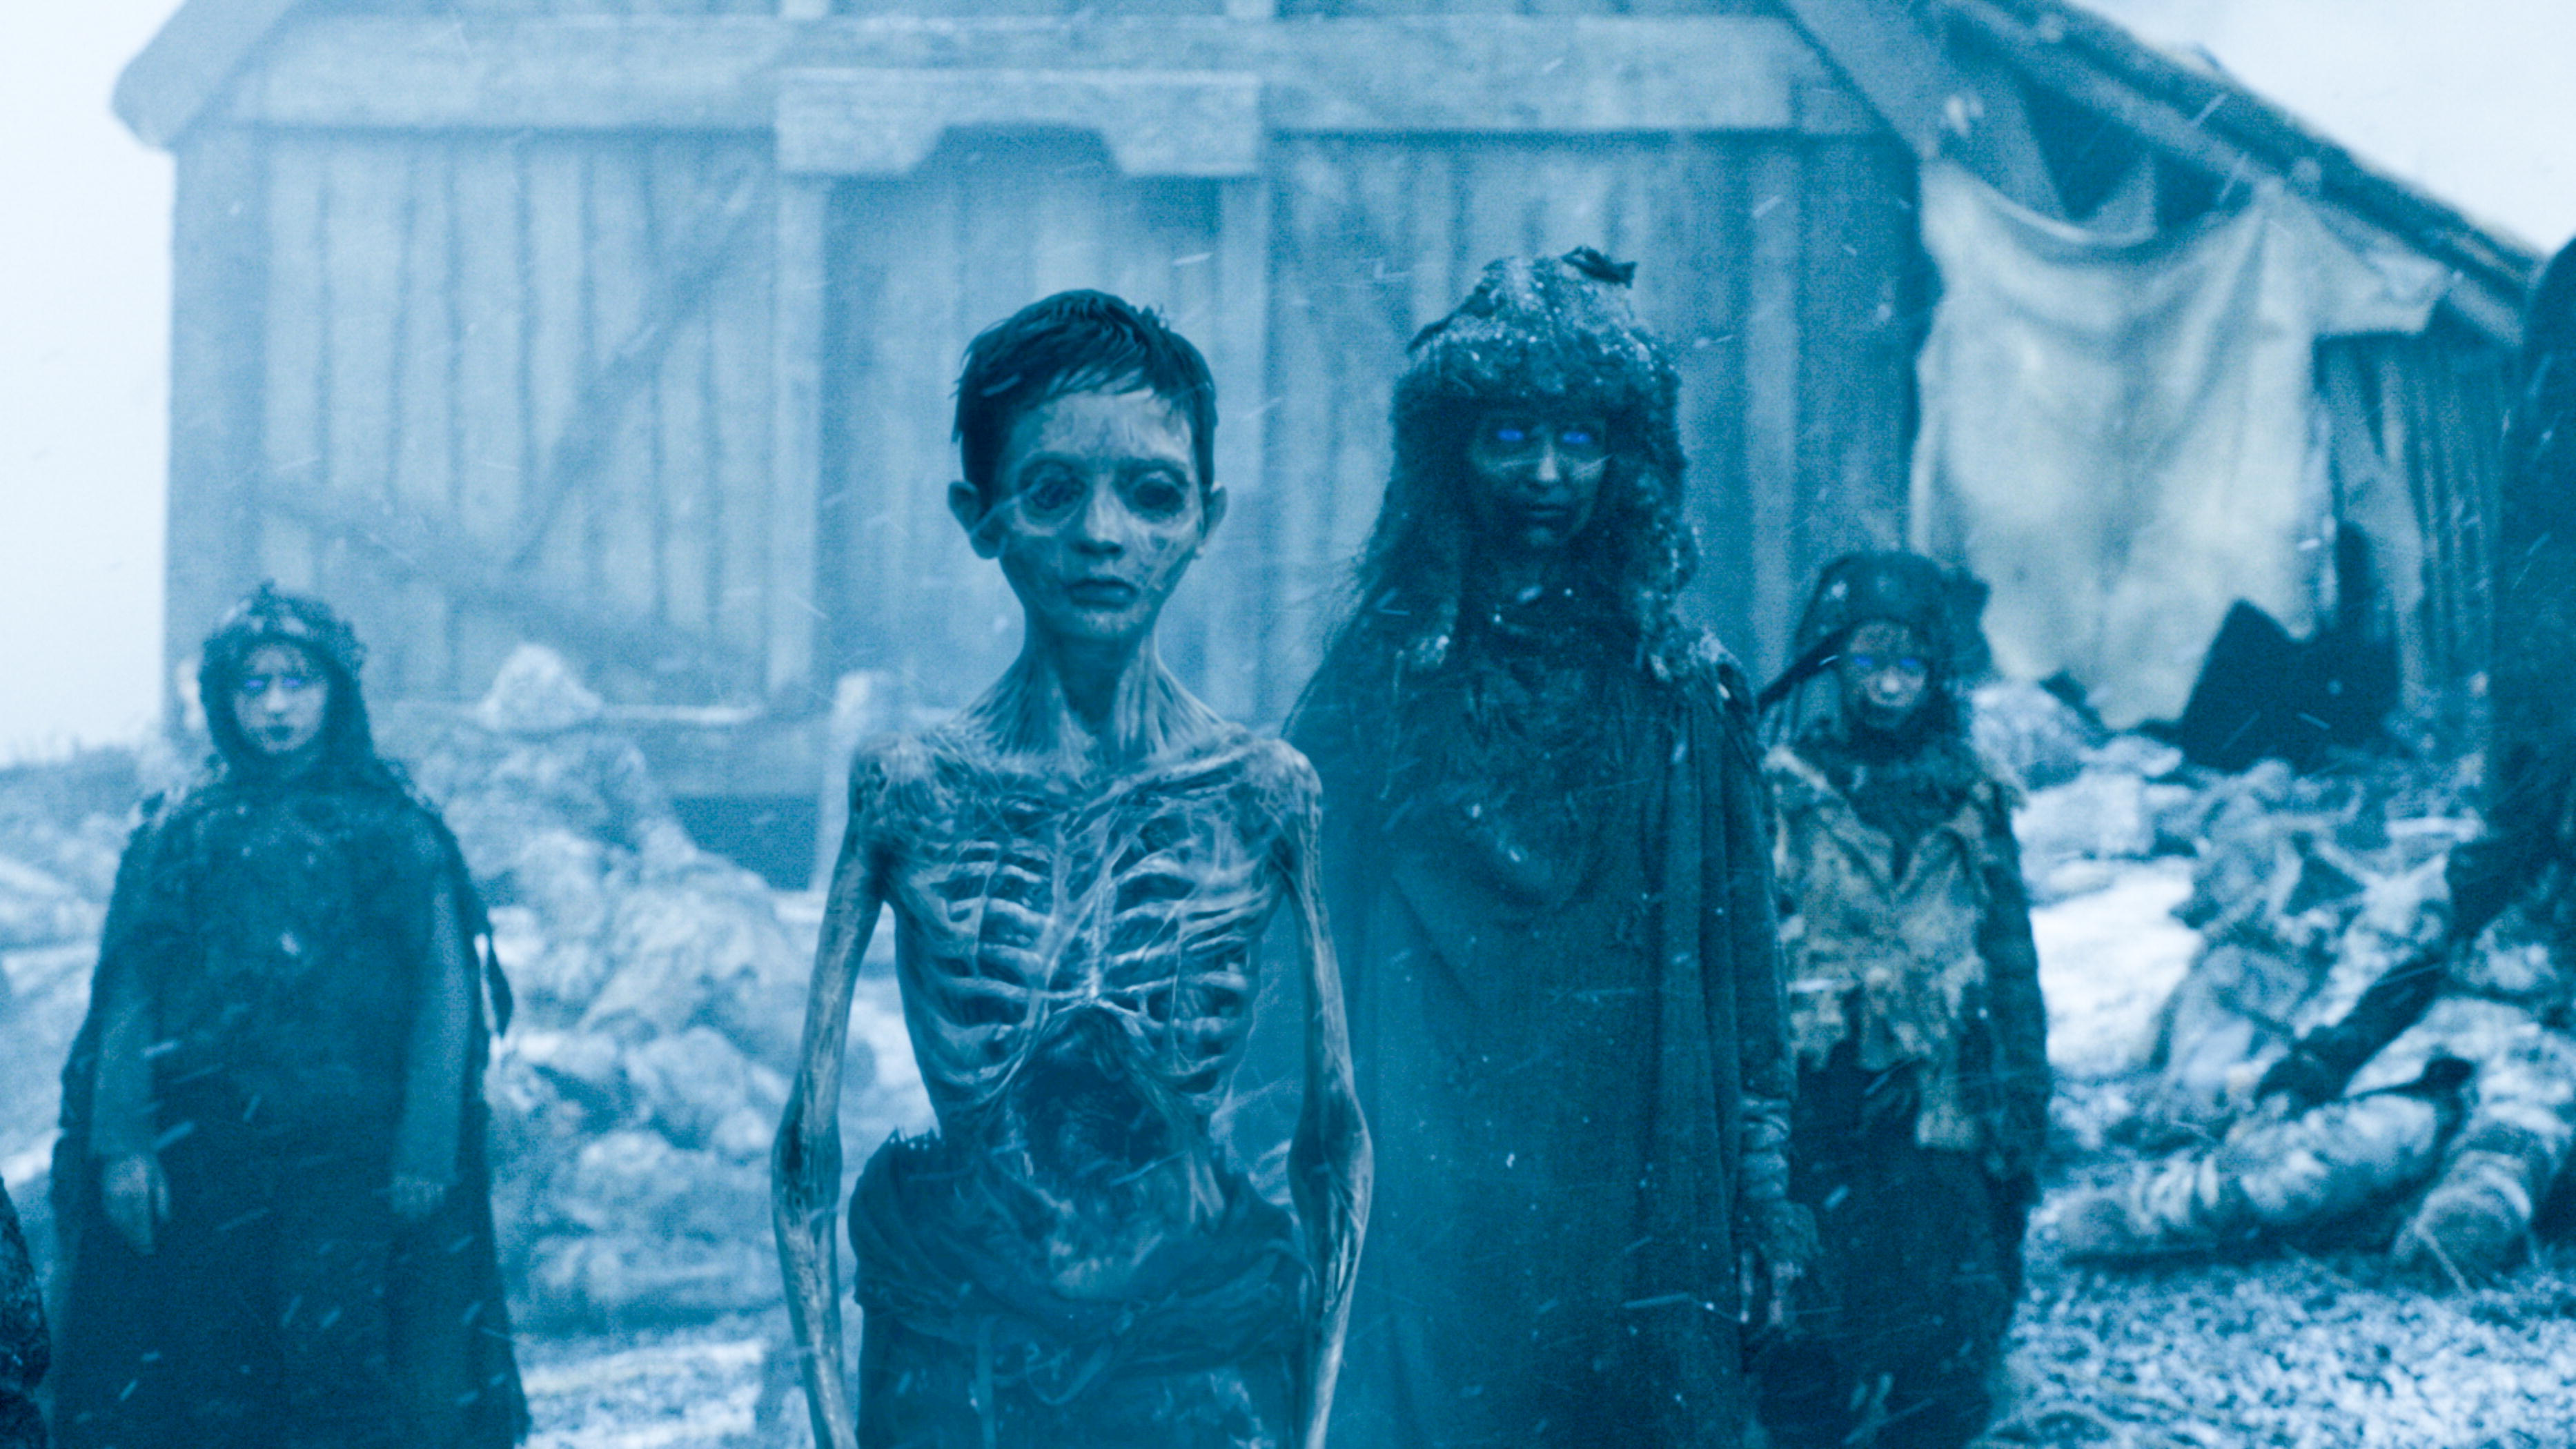 Review: \'Game of Thrones\' Season 5 Episode 8: The Dead Rise in ...